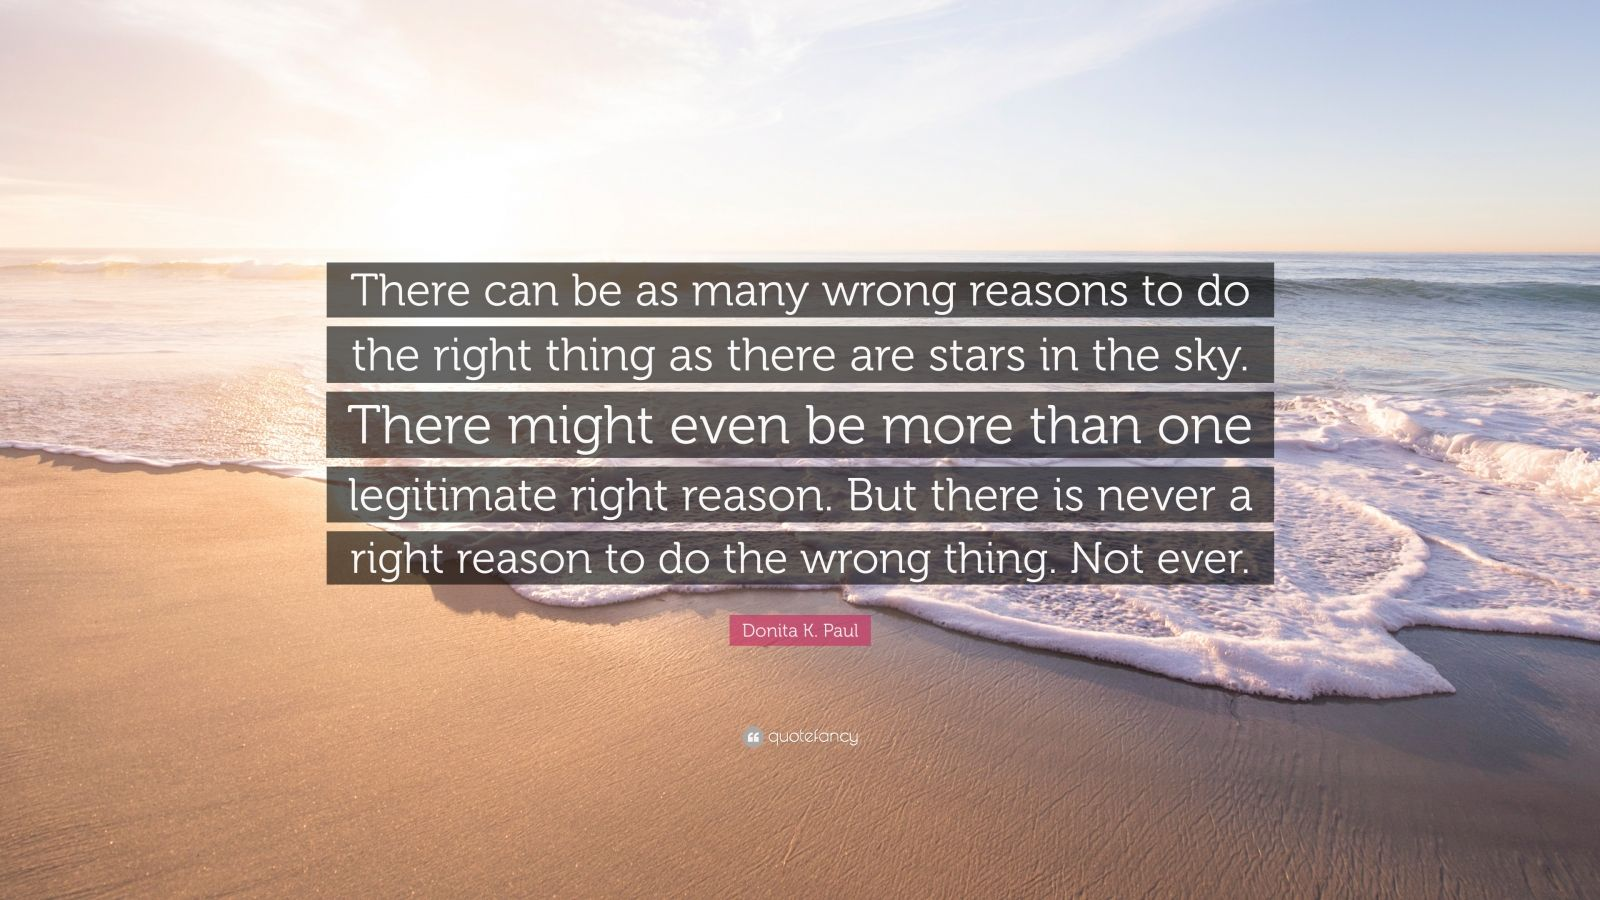 """Donita K. Paul Quote: """"There can be as many wrong reasons to do the right thing as there are stars in the sky. There might even be more than one legitimate right reason. But there is never a right reason to do the wrong thing. Not ever."""""""